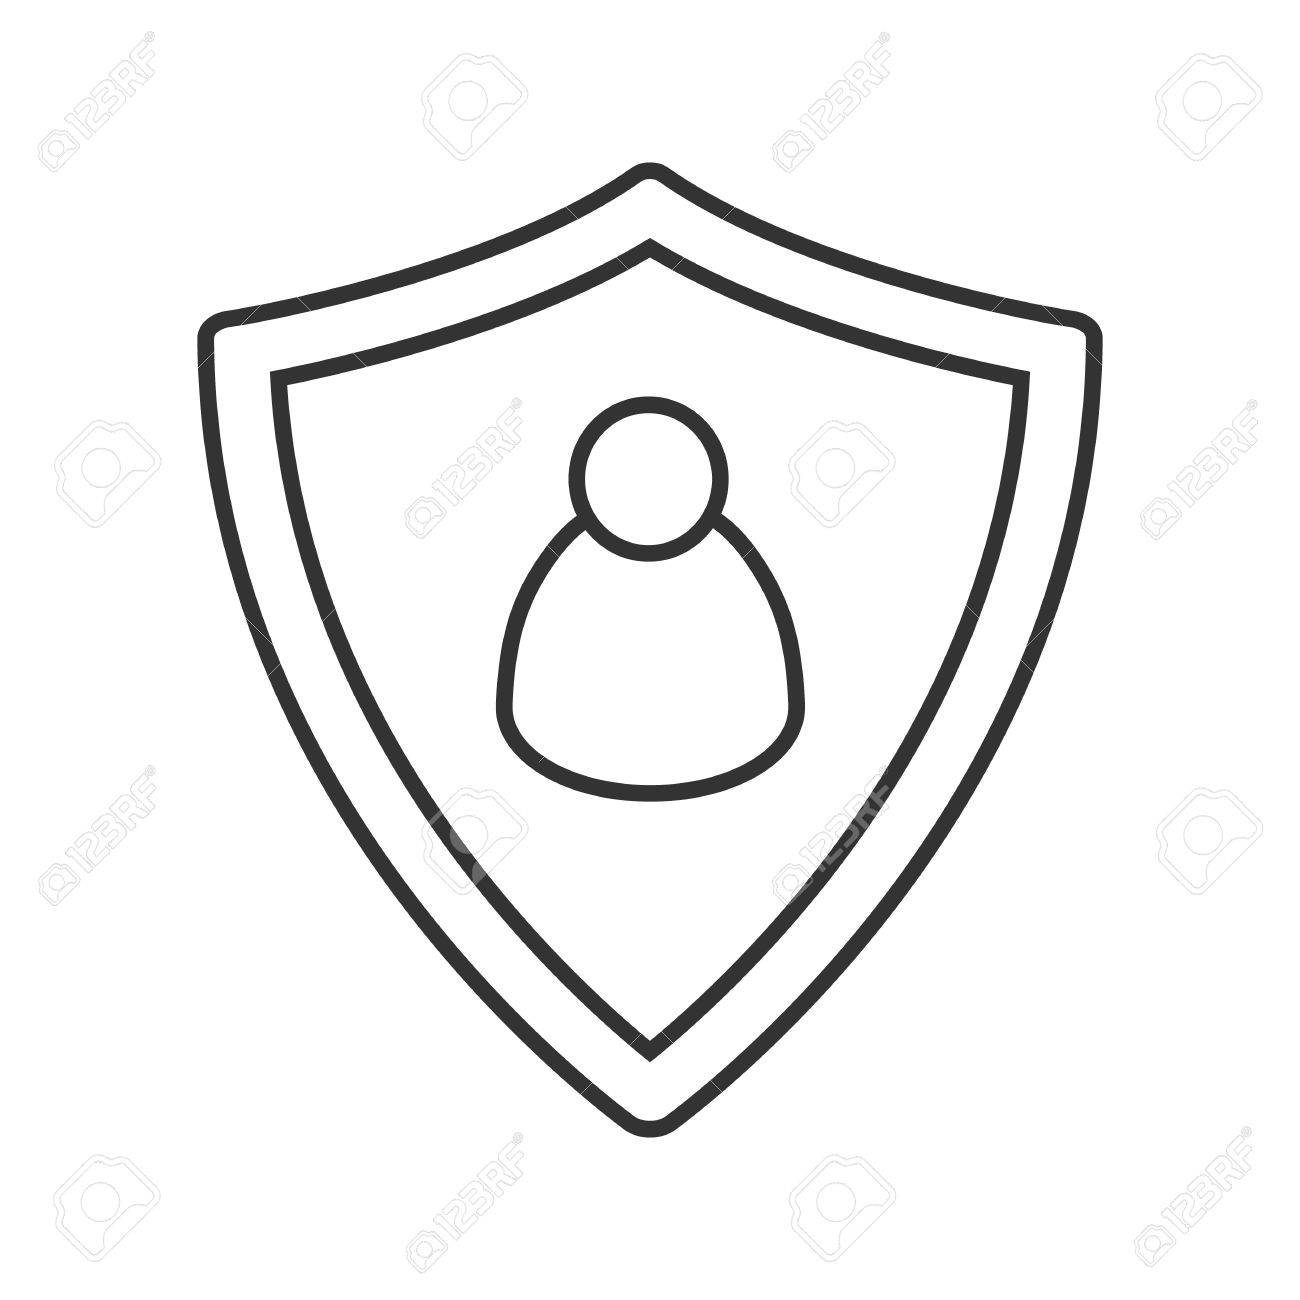 1300x1300 User Security Linear Icon. Thin Line Illustration. Protection